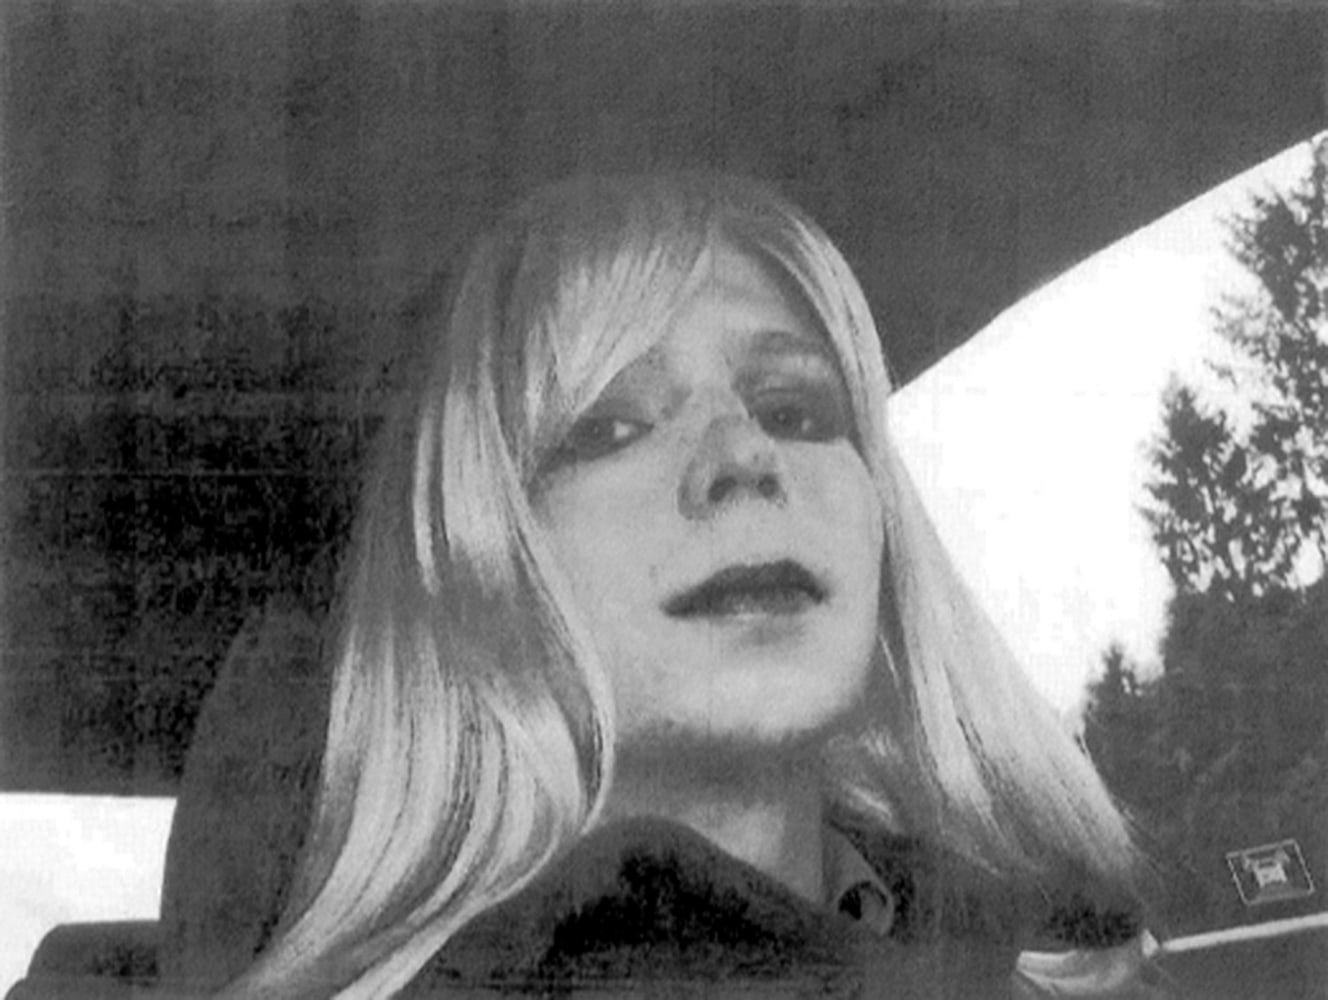 Chelsea Manning releases first statement since clemency win